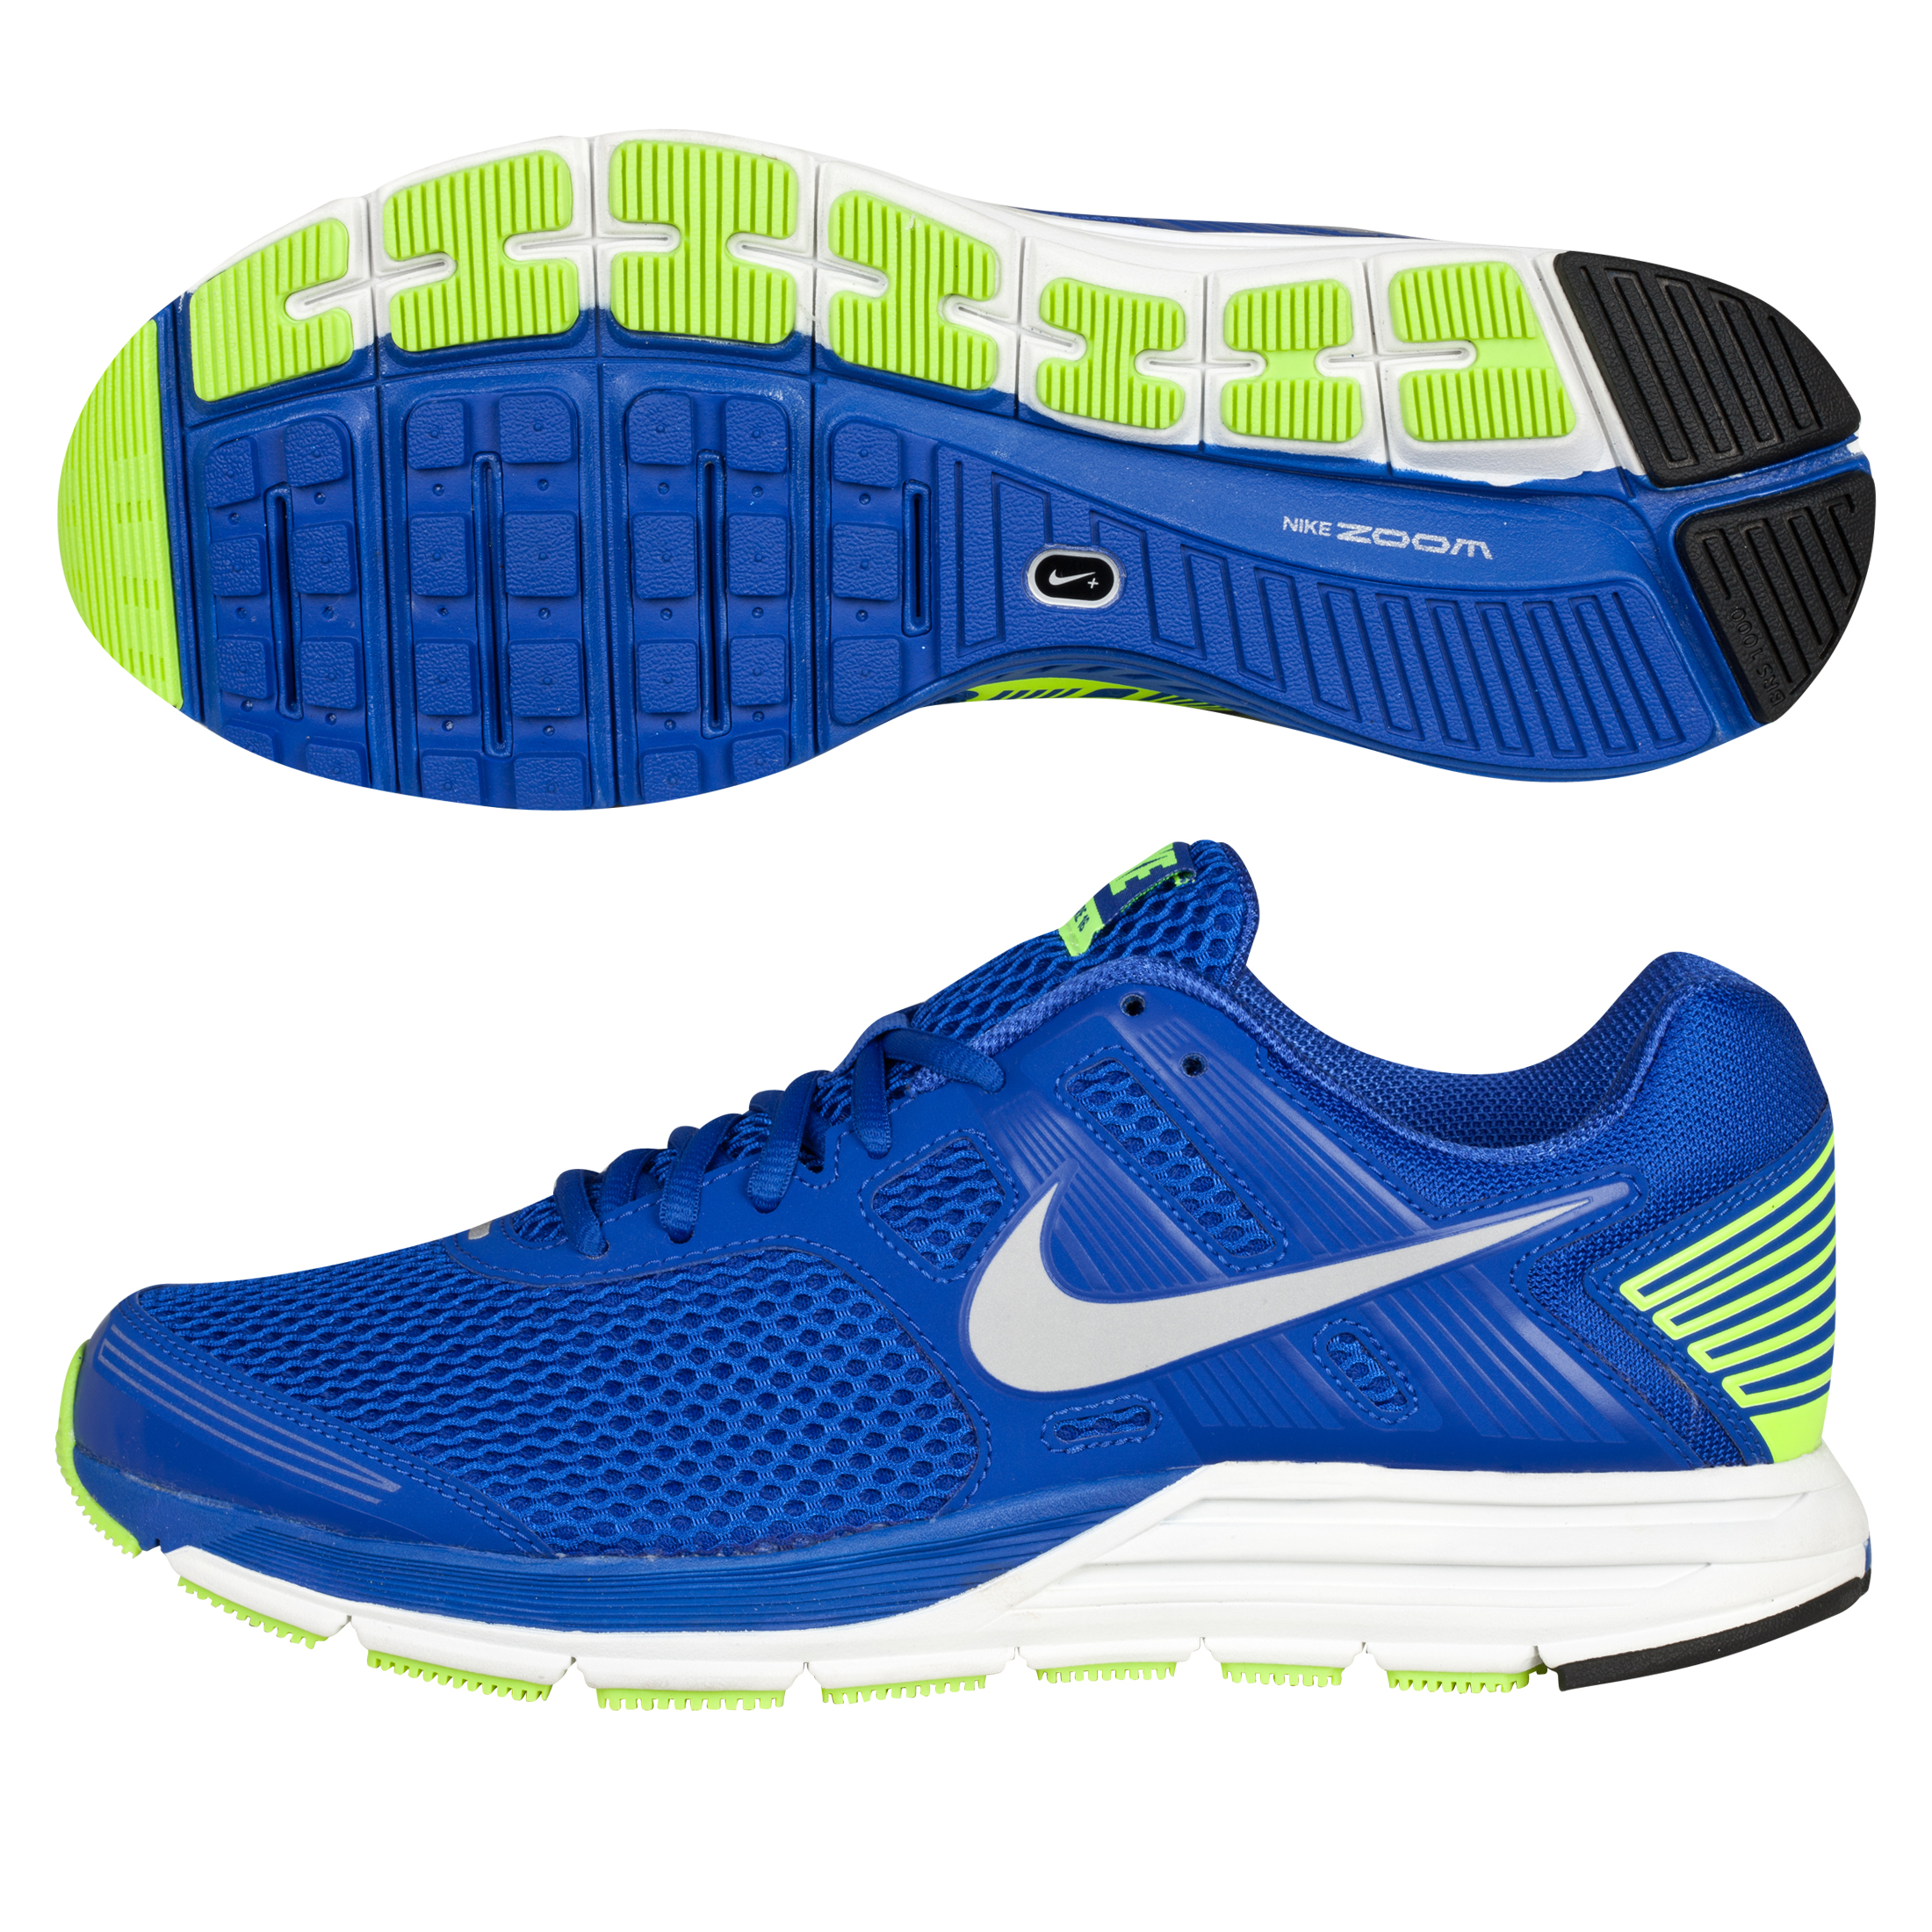 Nike Zoom Structure+ 16 Trainer - Hyper Blue/Reflective Silver/Volt/White